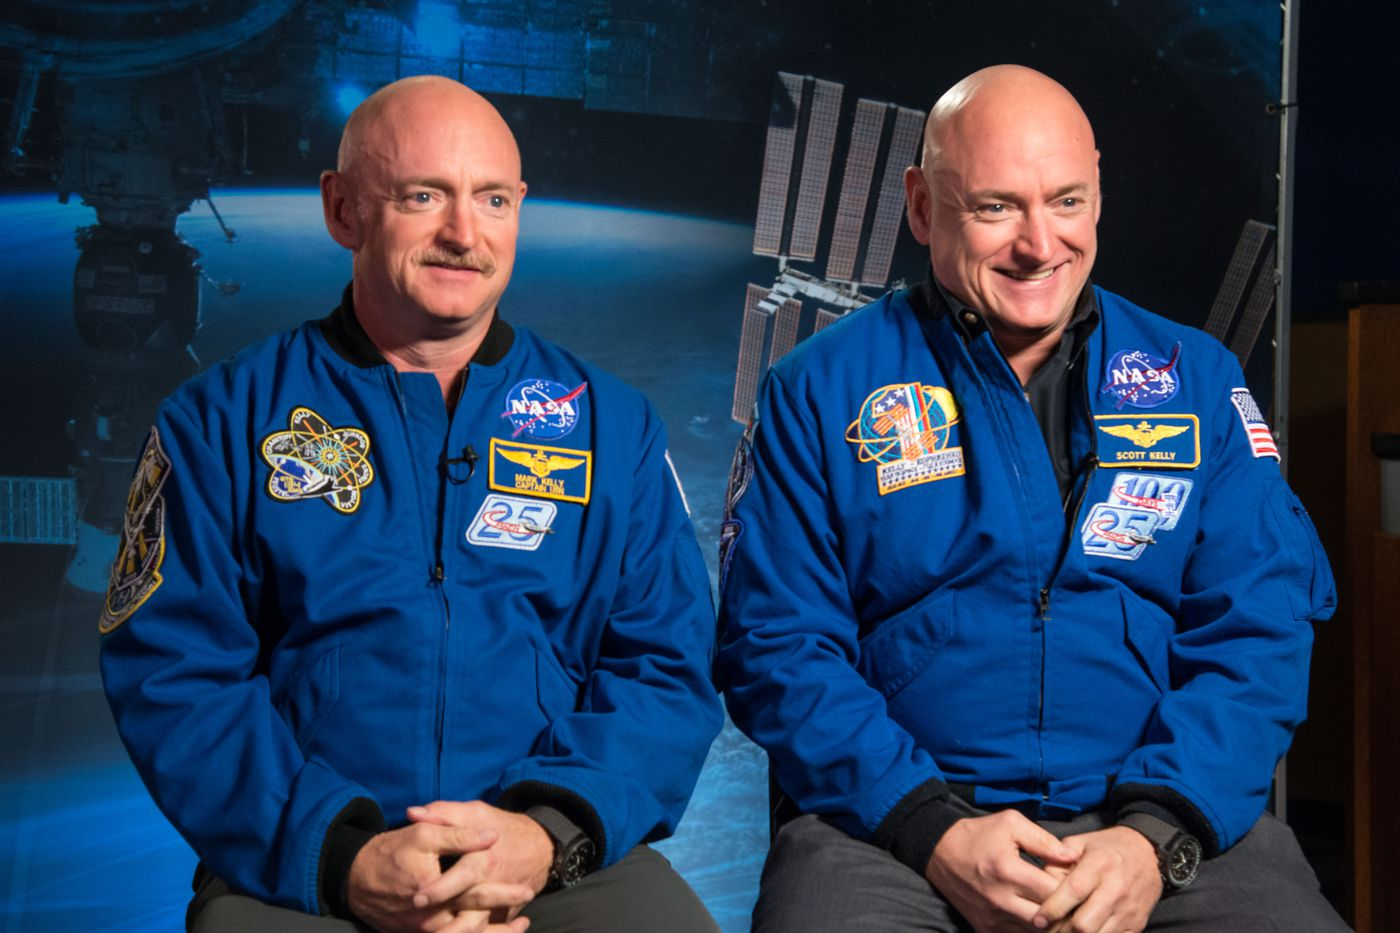 Space did not permanently alter former NASA astronaut's DNA - The Verge